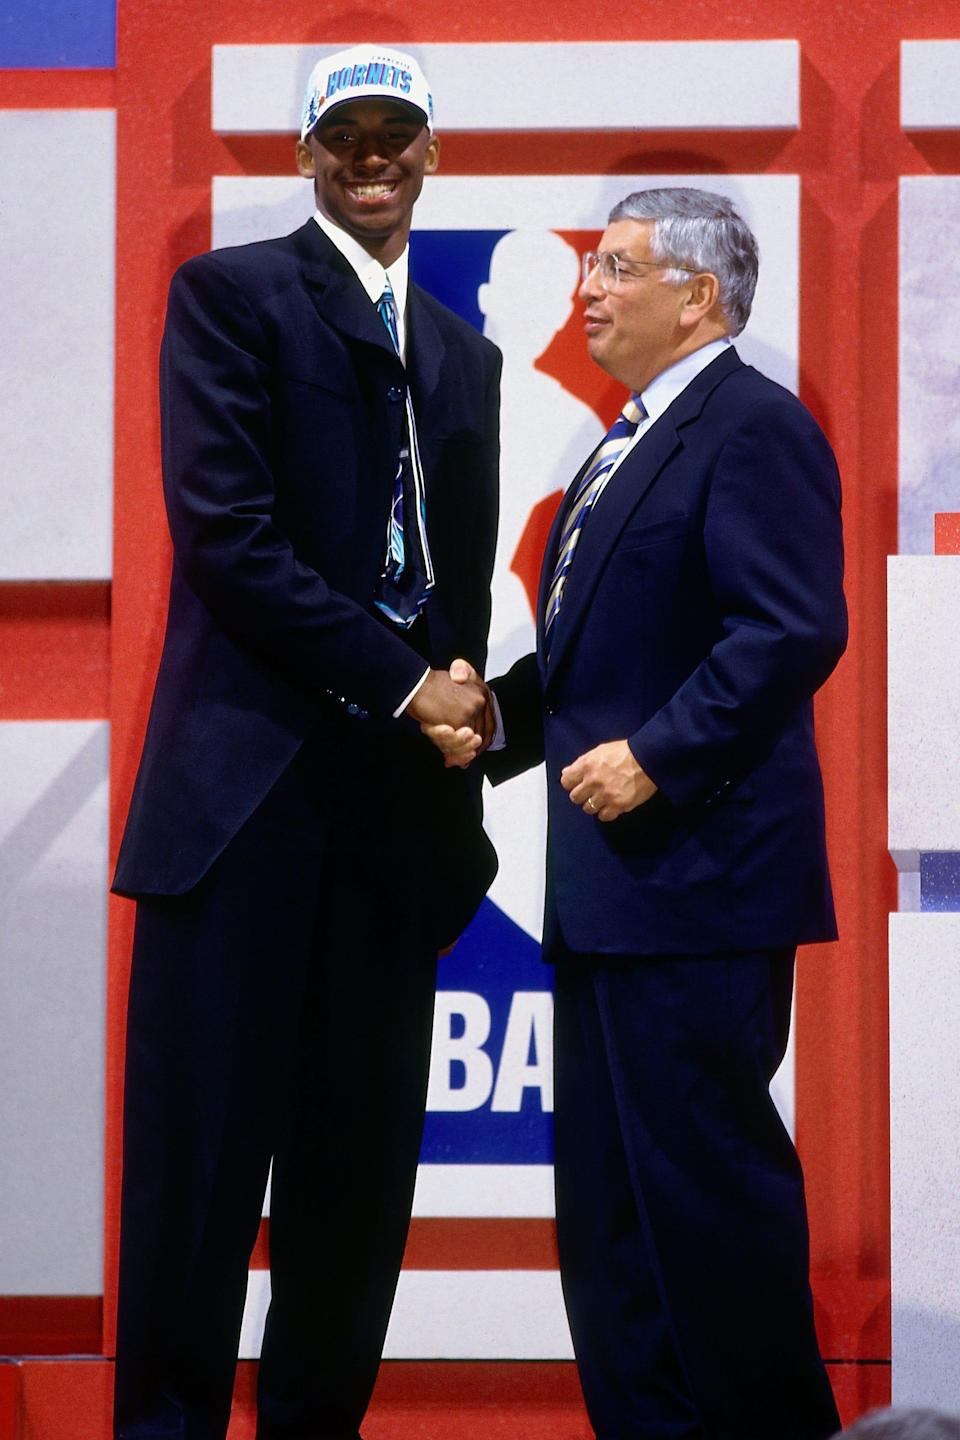 NEW YORK - JUNE 26:  Kobe Bryant poses with NBA Commissioner David Stern after being selected in the first round of the 1996 NBA Draft on June 26, 1996 at Madison Square Garden in New York, New York. NOTE TO USER: User expressly acknowledges that, by downloading and or using this photograph, User is consenting to the terms and conditions of the Getty Images License agreement. Mandatory Copyright Notice: Copyright 1996 NBAE (Photo by Nathaniel S. Butler/NBAE via Getty Images) [Via MerlinFTP Drop]